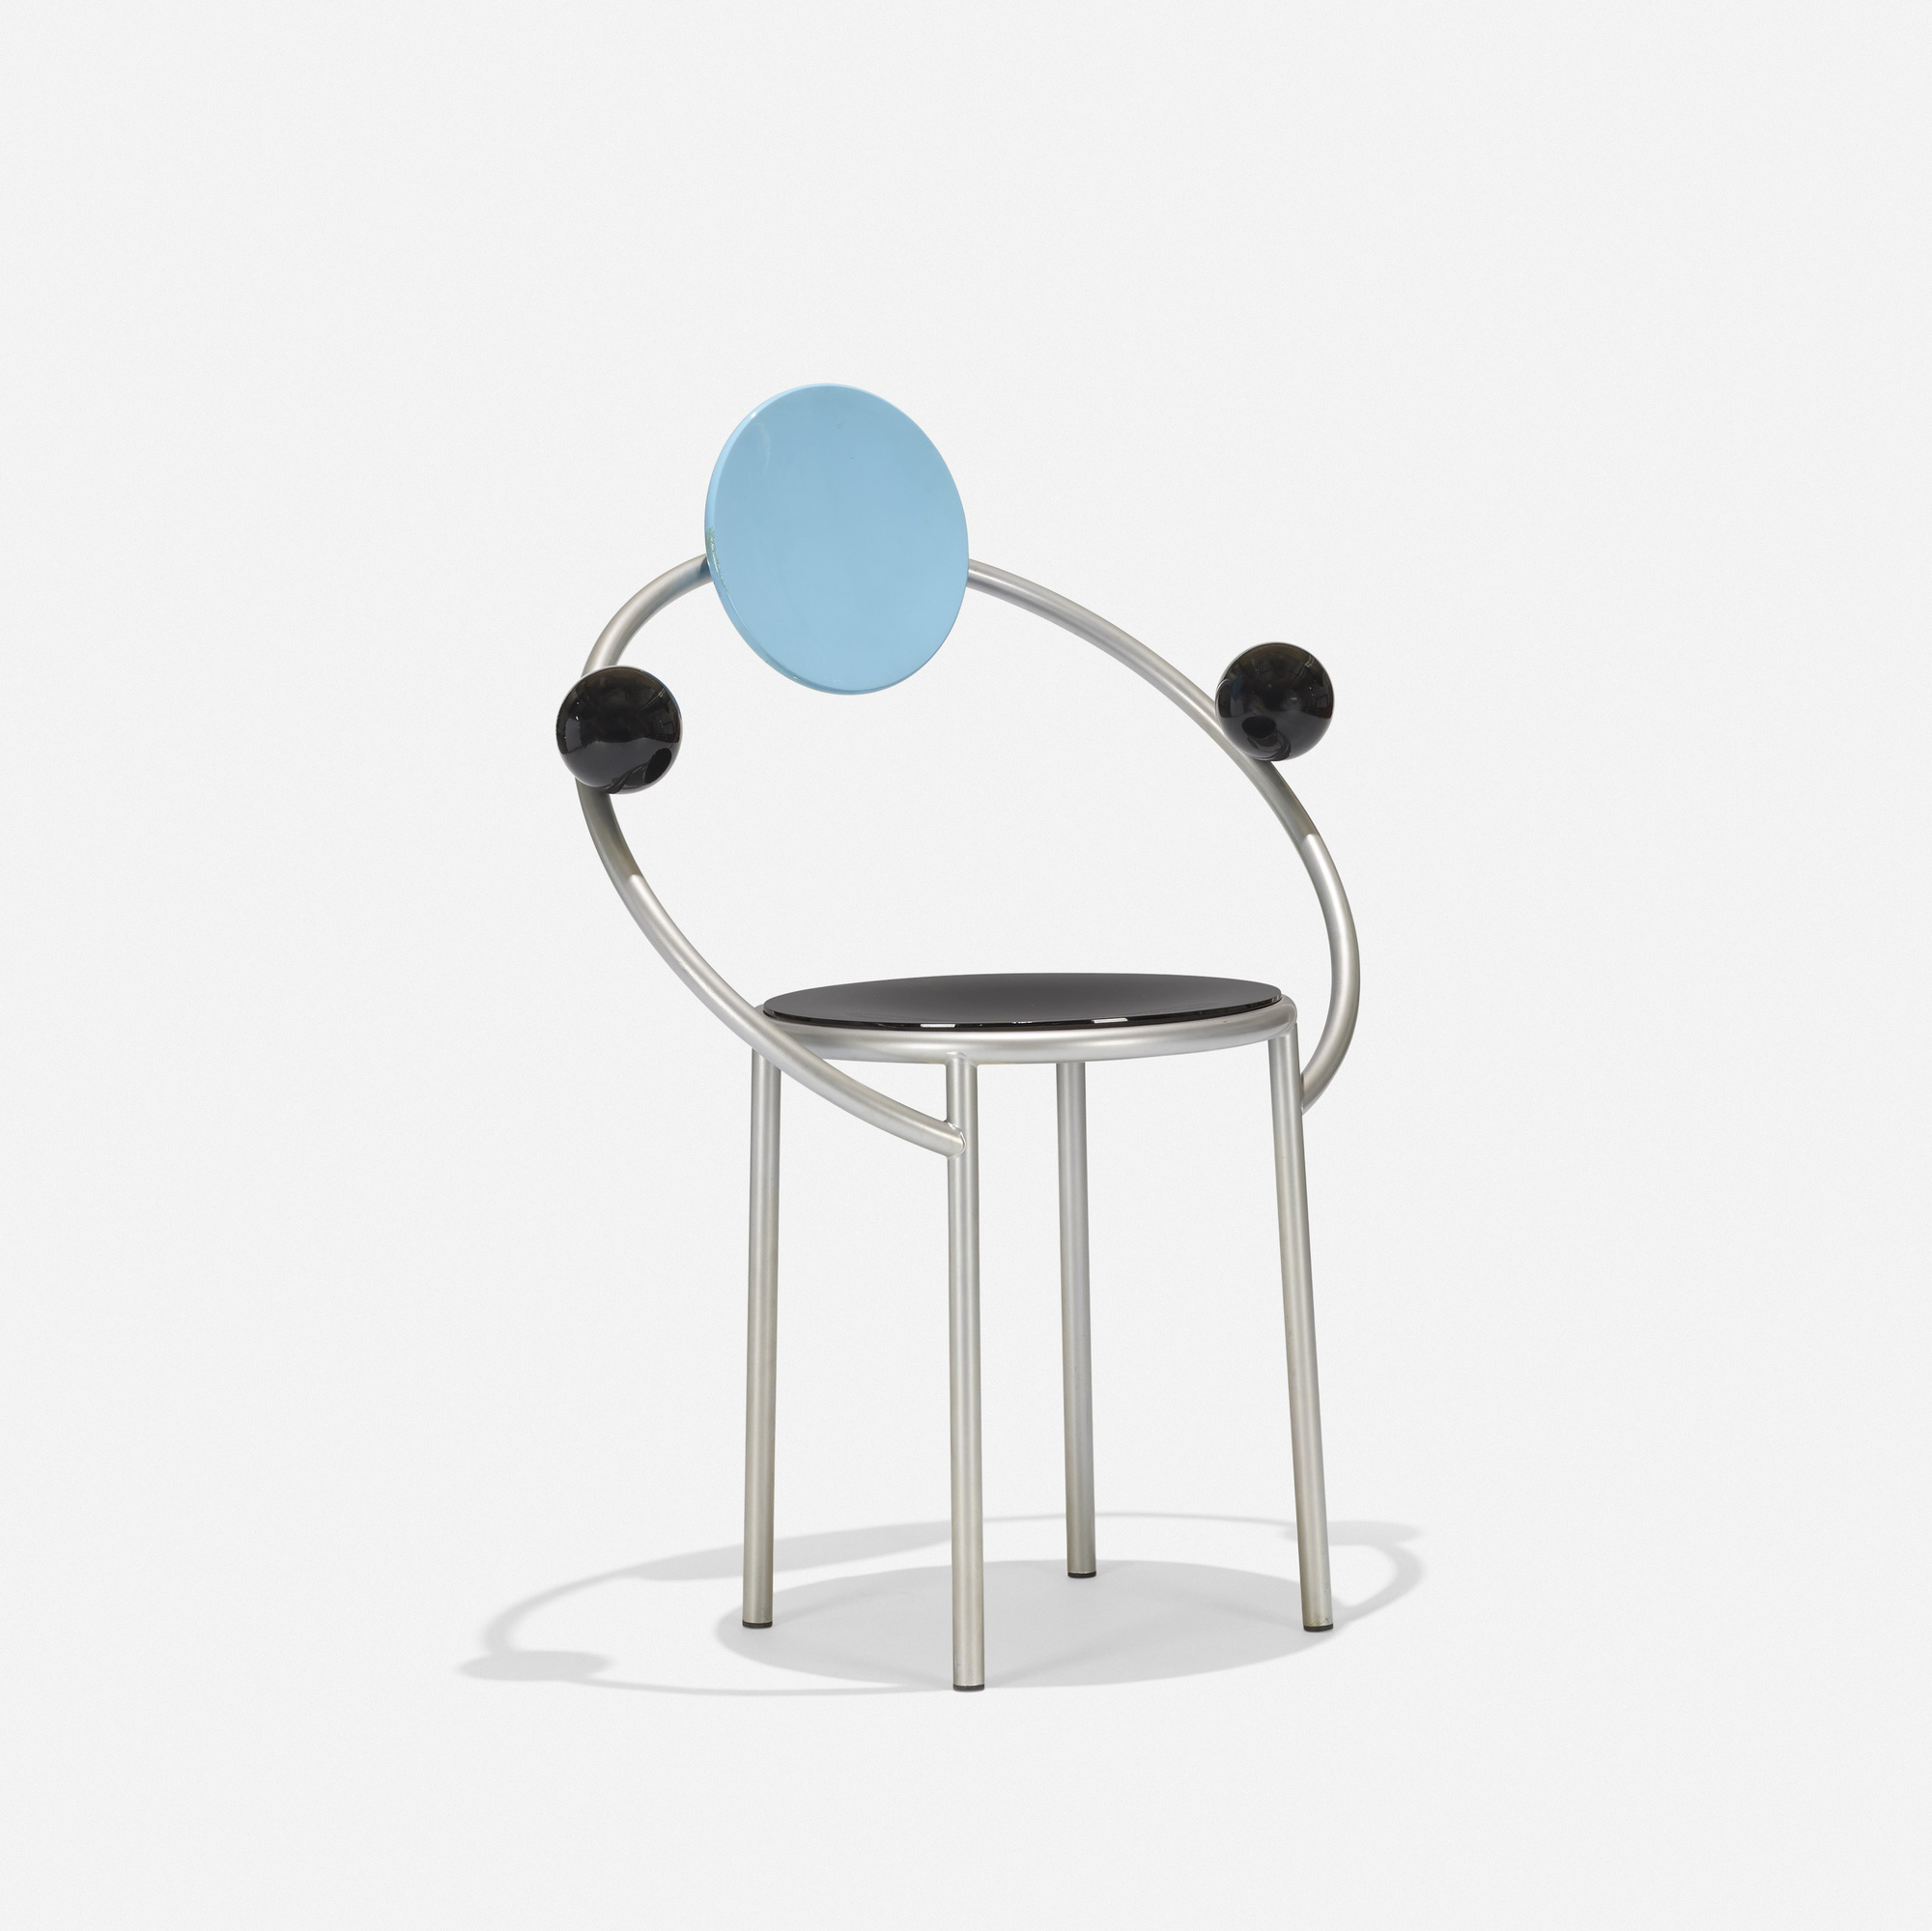 186: Michele De Lucchi / First Chair (2 of 3)